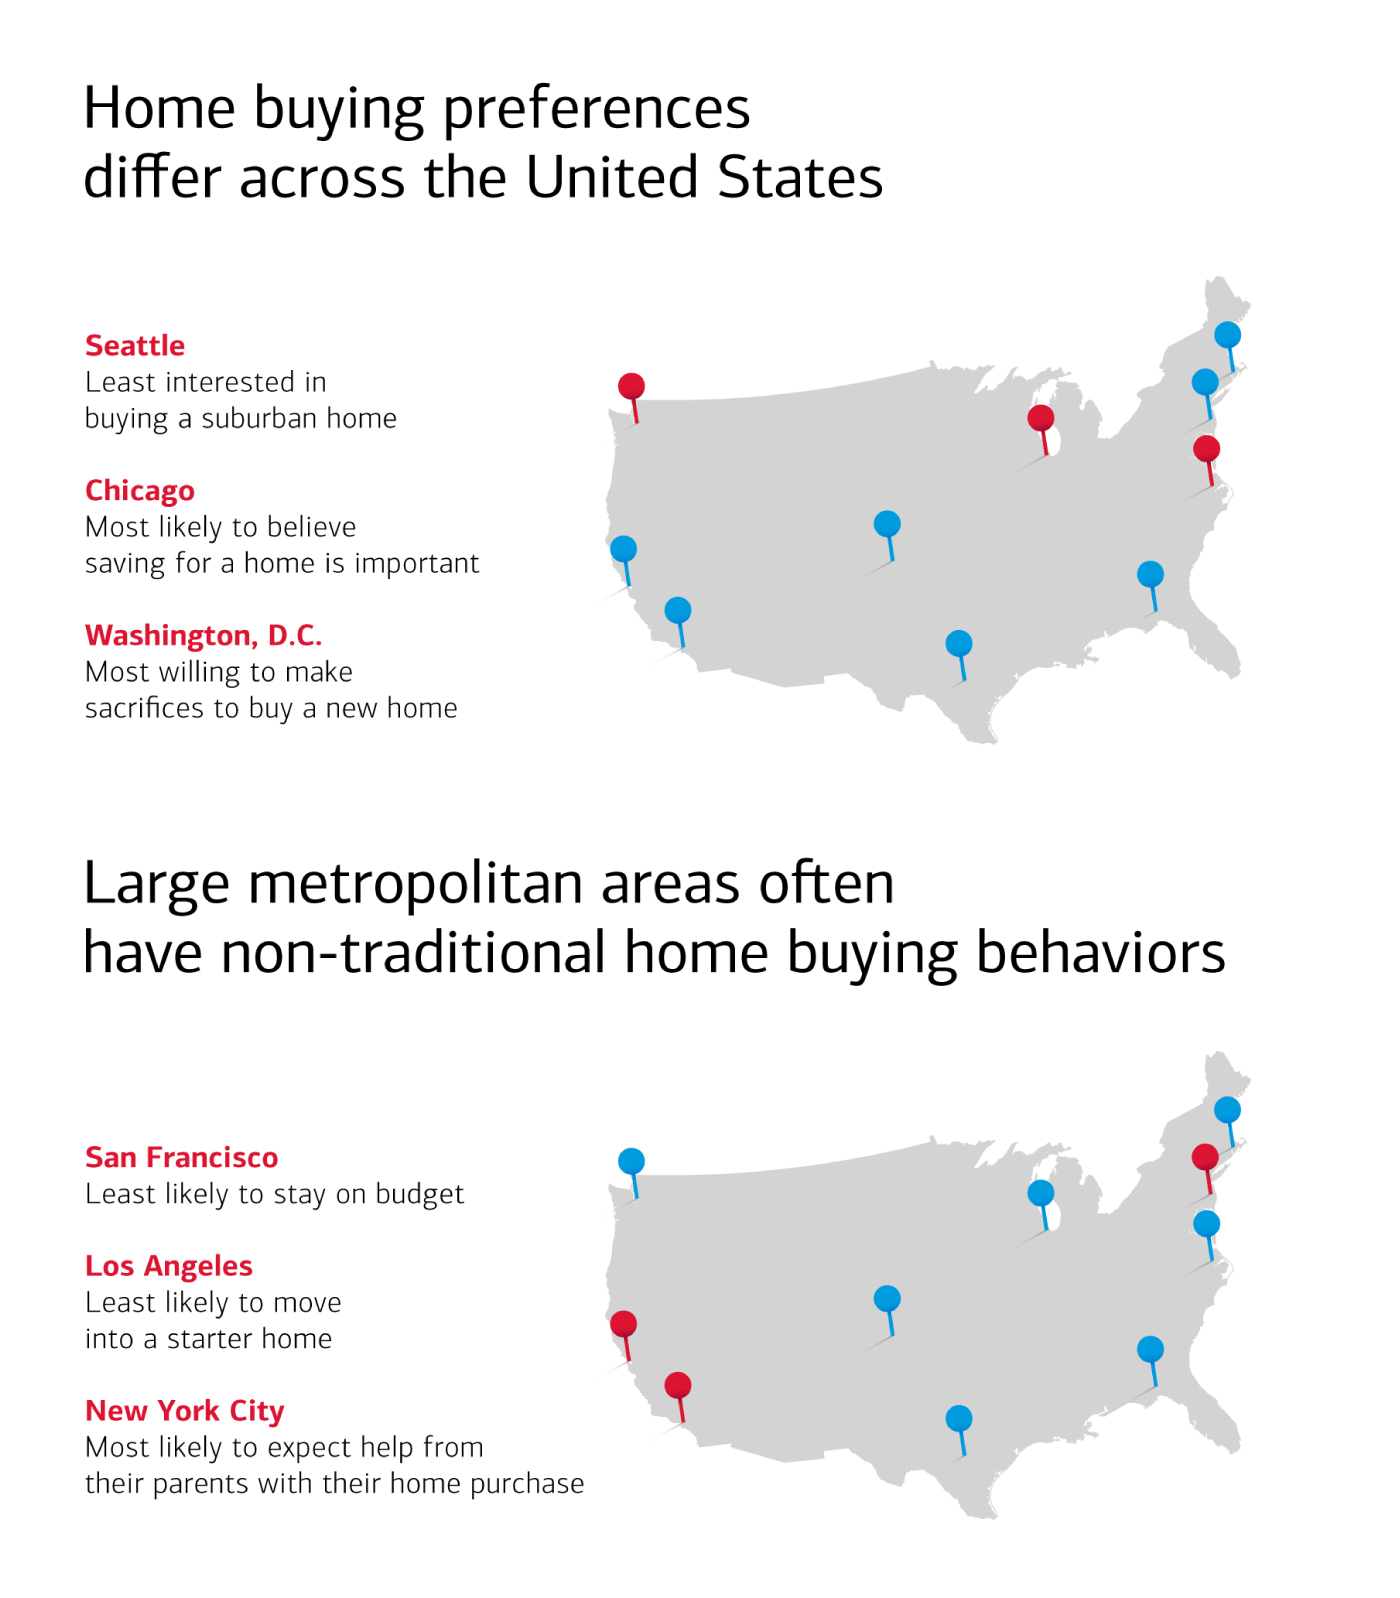 Home buying preferences and behaviors in major metropolitan cities